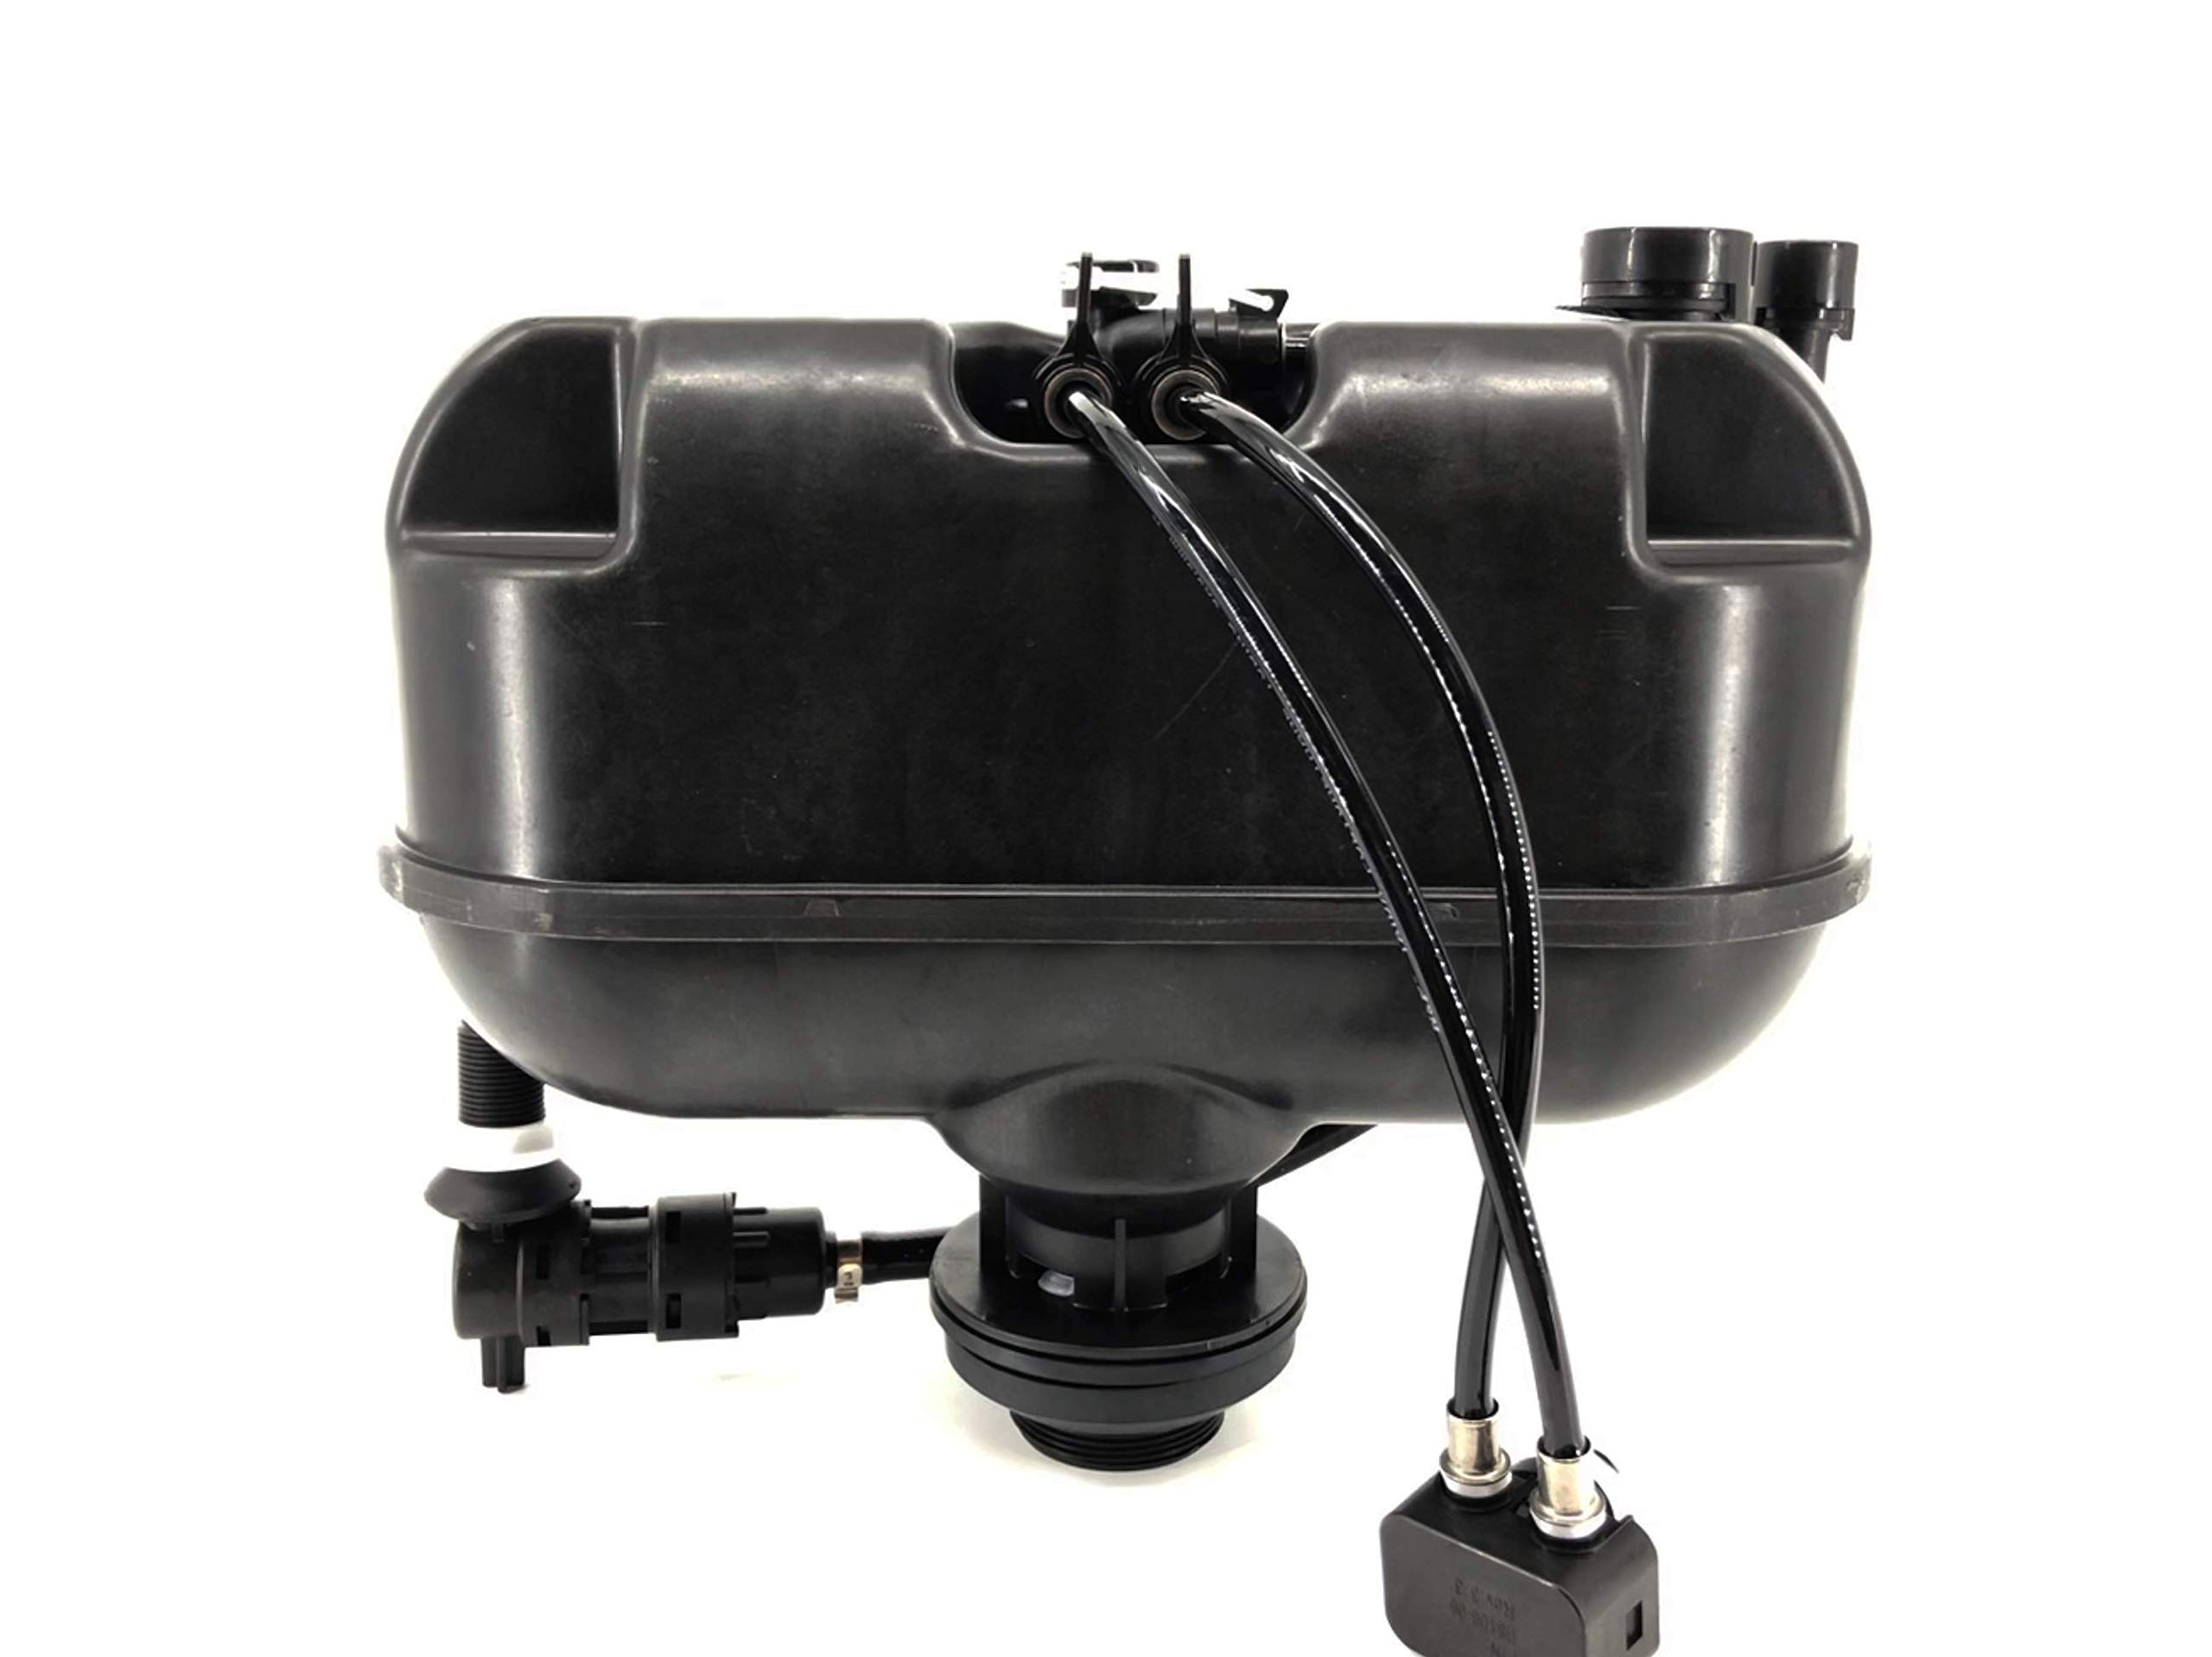 EcoFlush B8104 1.1 GPF 4 LPF Pressure Assisted Flush System Single Control, Replacement Only by EcoFlush